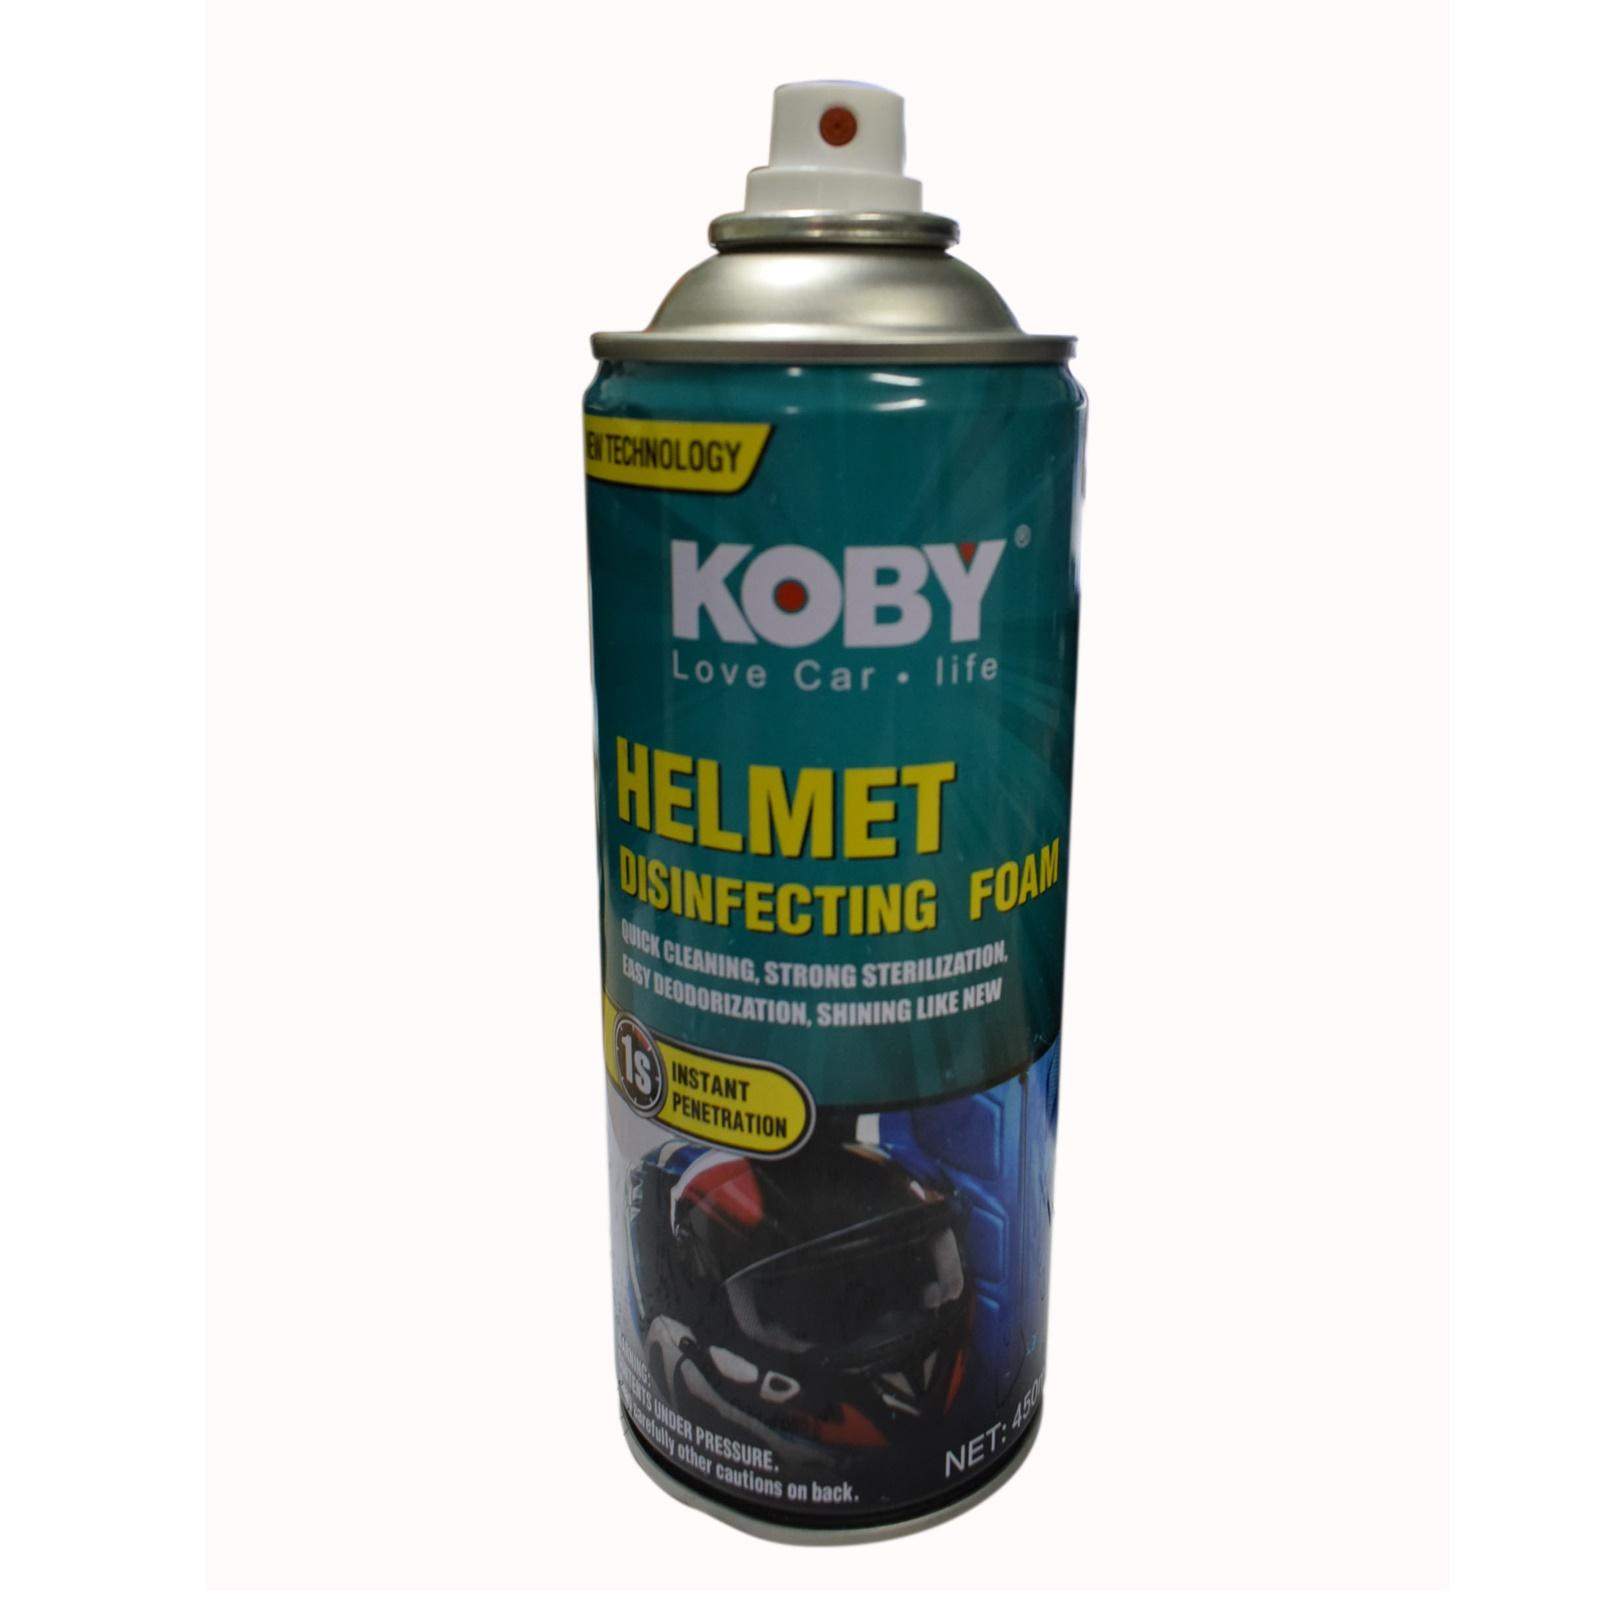 Koby Helmet Disinfecting Foam . By Guru Mehar.